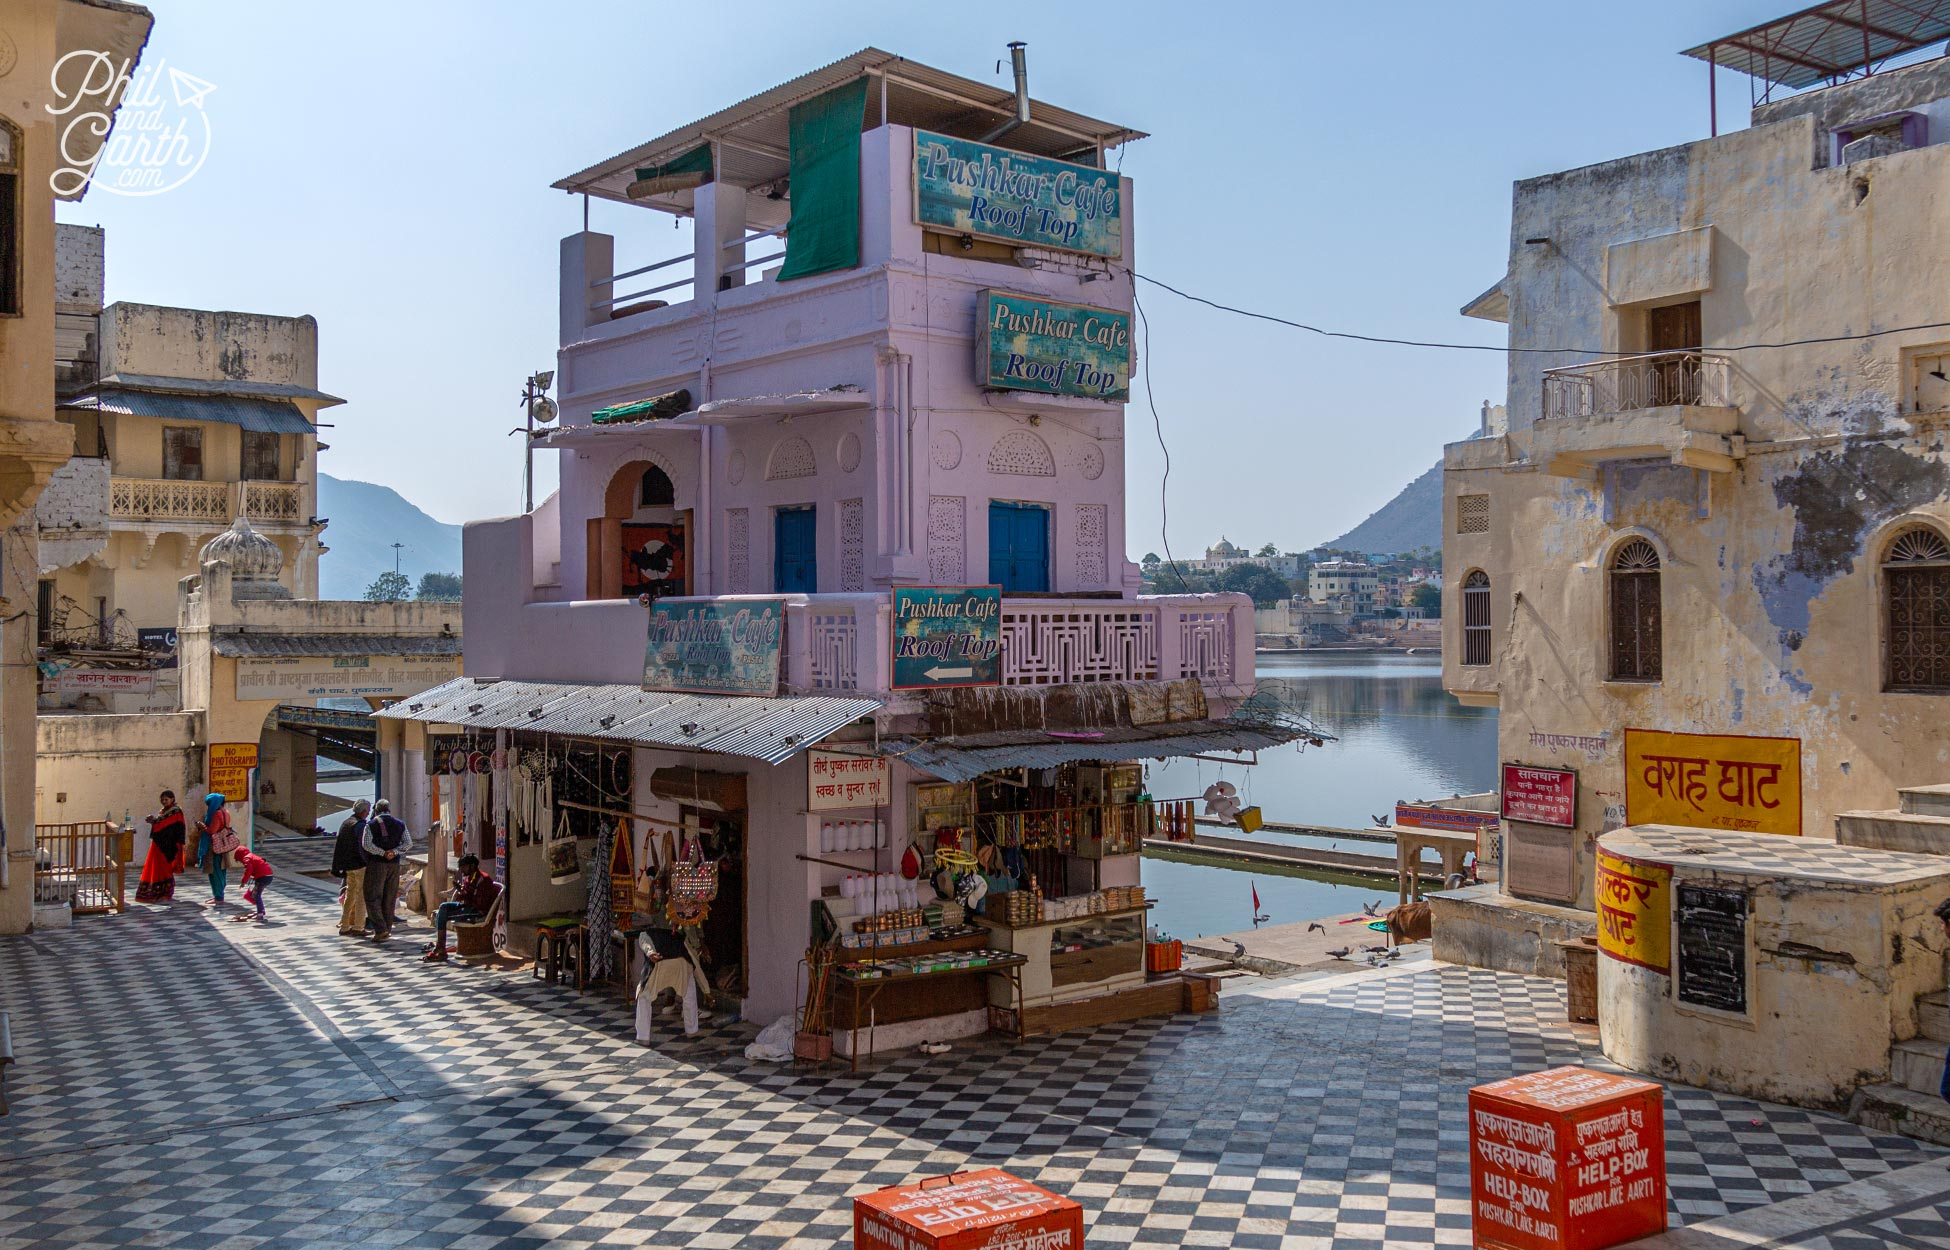 Places to visit in Pushkar - The Pushkar Cafe Roof Top - a great spot for lunch and photos